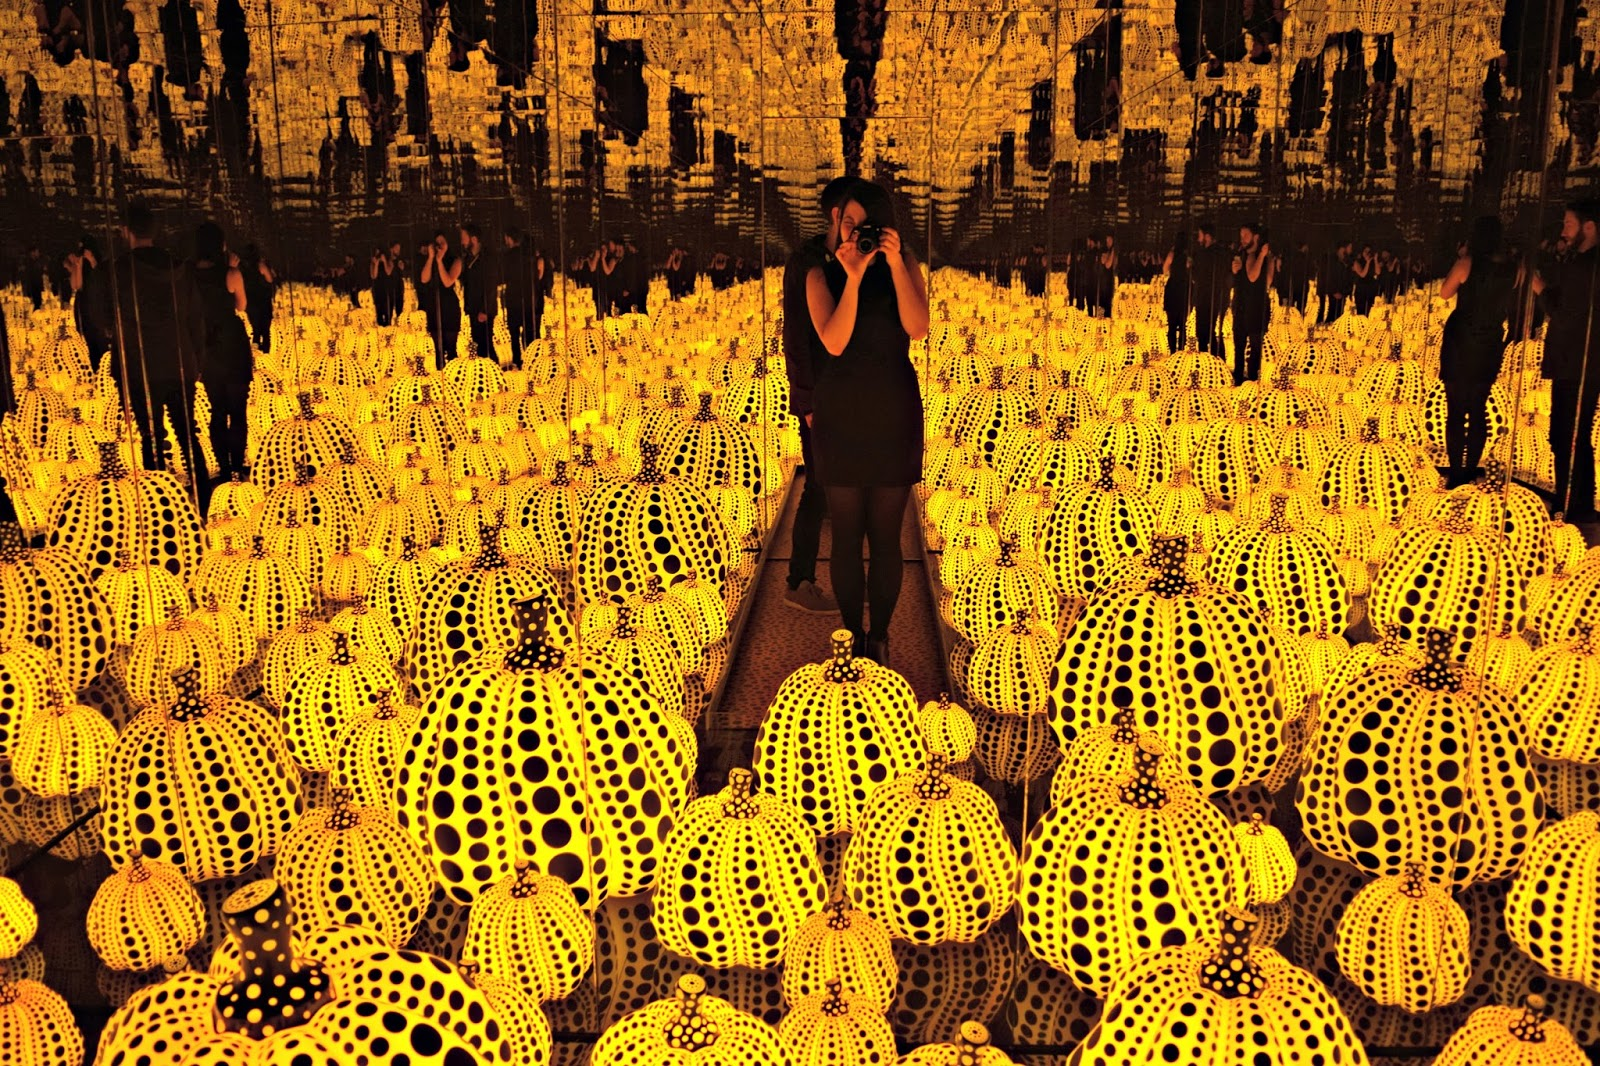 Yayoi Kusama mirror room all the eternal love I have for the pumkins